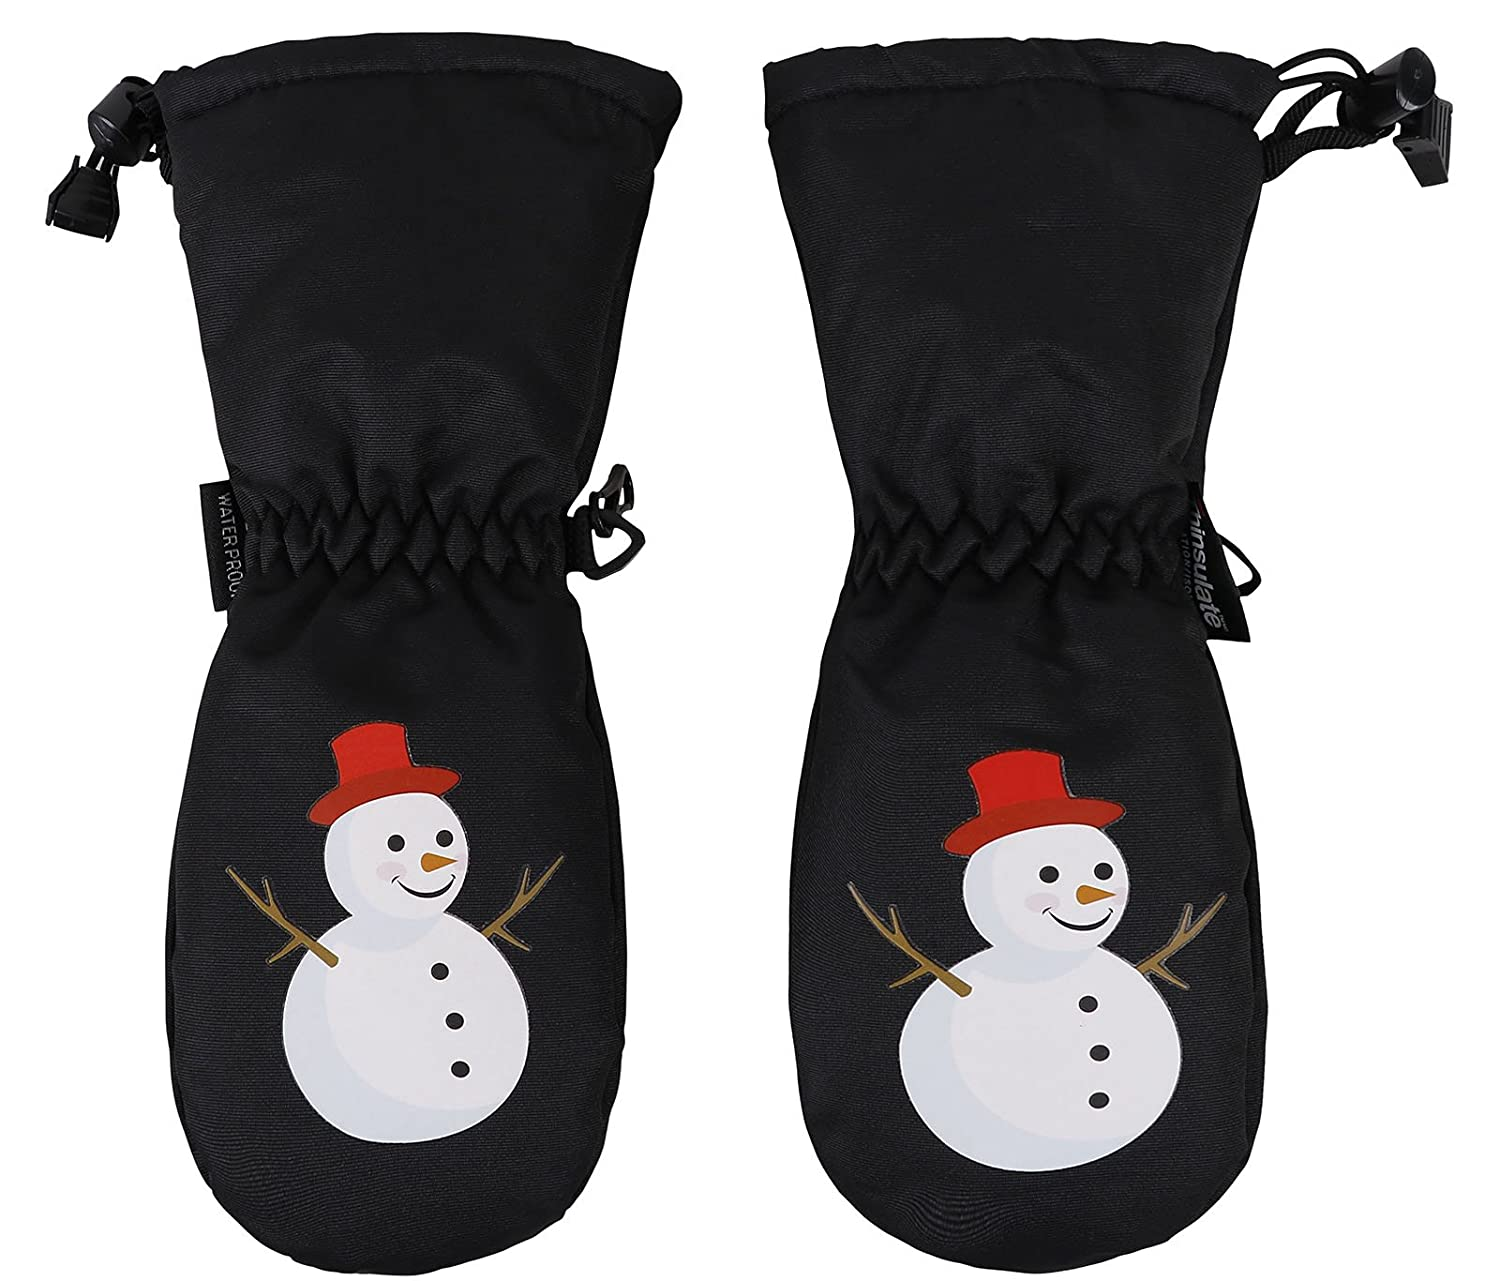 ANDORRA Kids Premium Weather-proof Thinsulate Snow Mittens